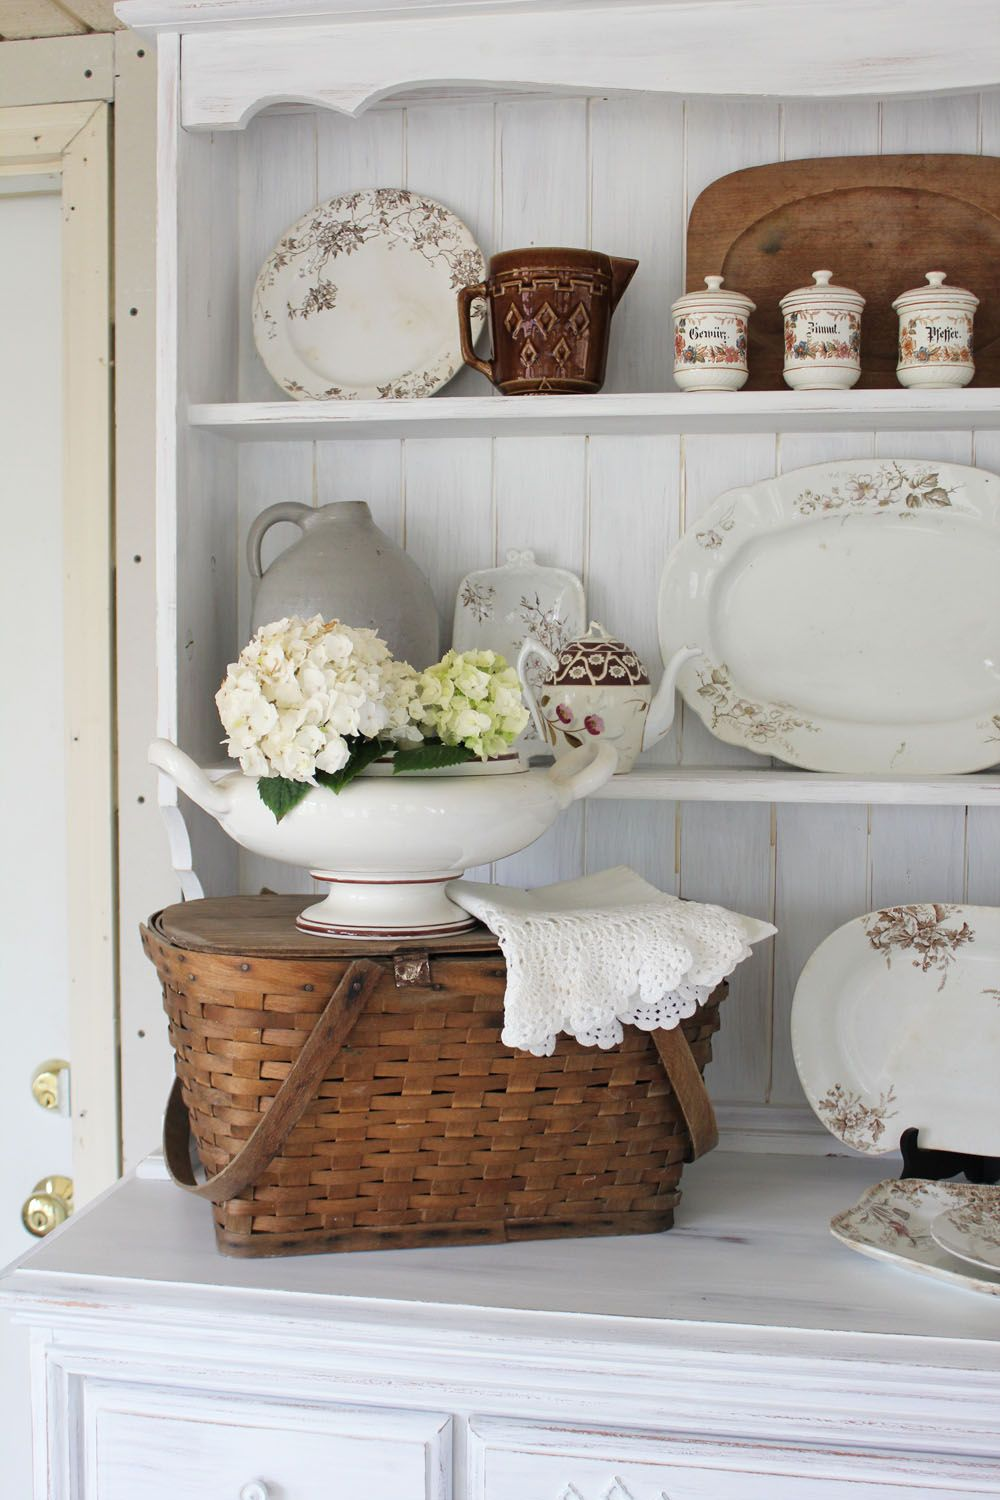 Adding Farmhouse Charm By Decorating With Baskets The Cottage Market